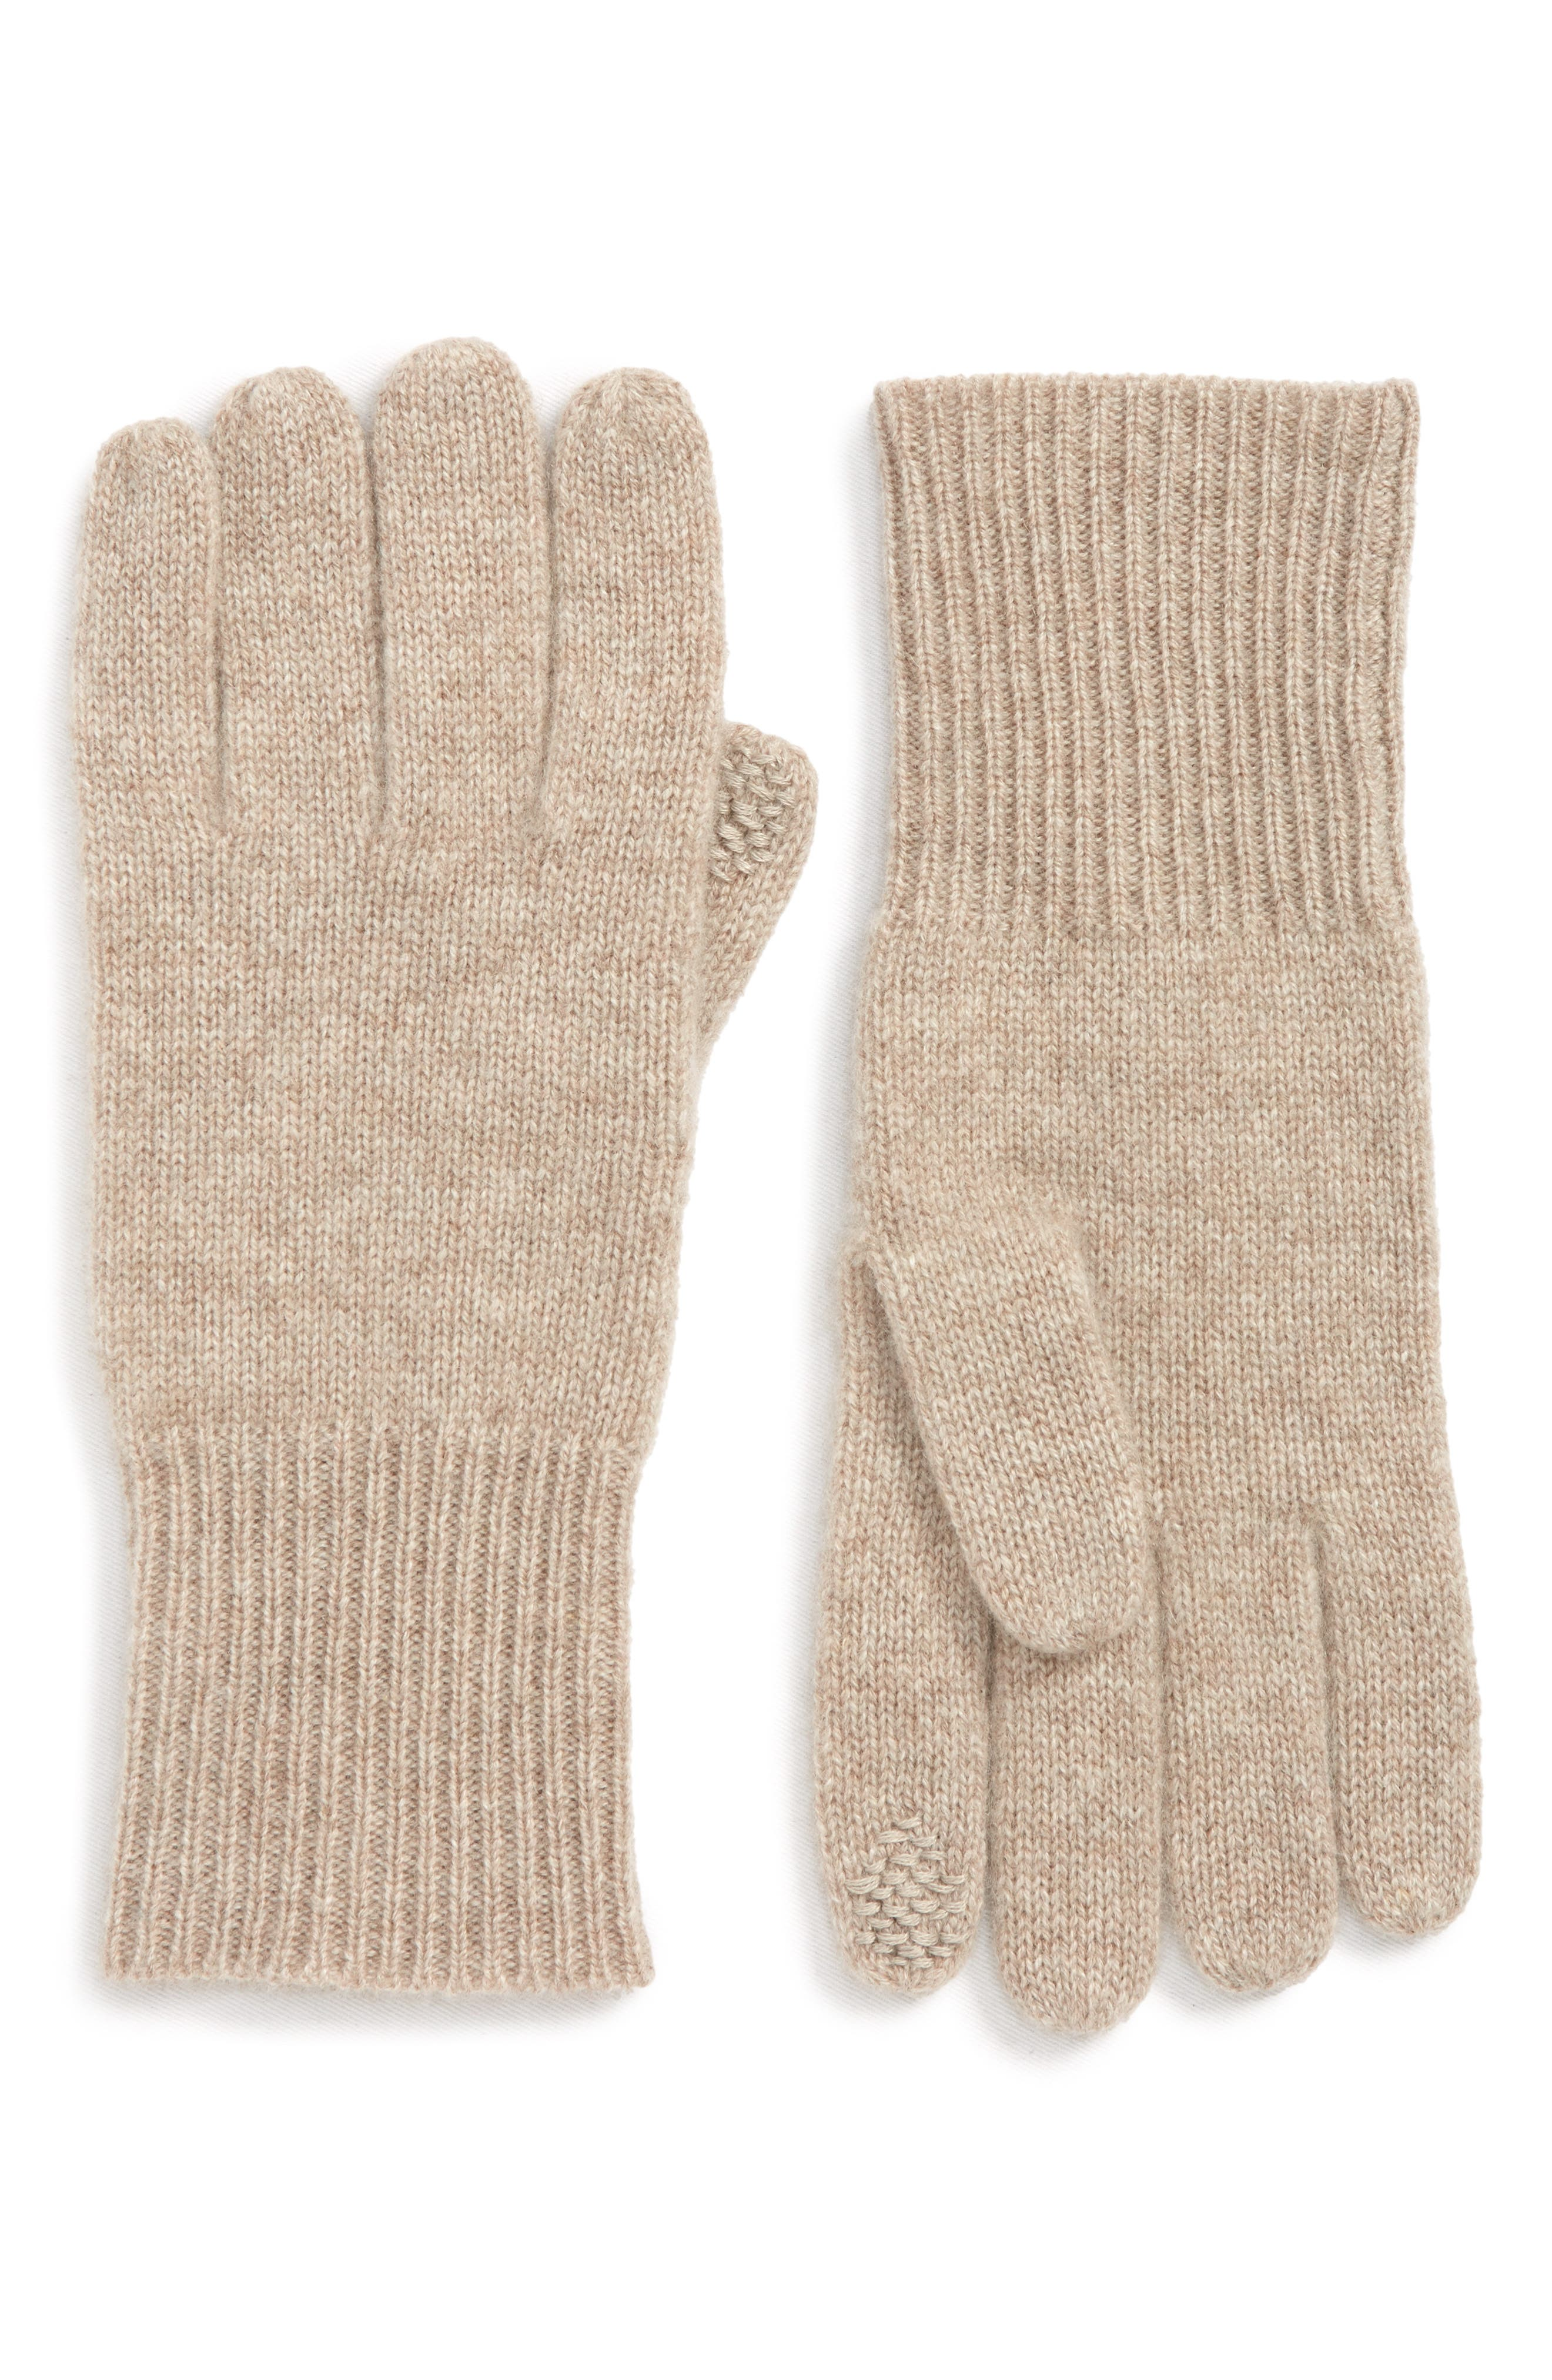 Rib Knit Cashmere Gloves,                             Main thumbnail 1, color,                             BEIGE OATMEAL DARK HTR